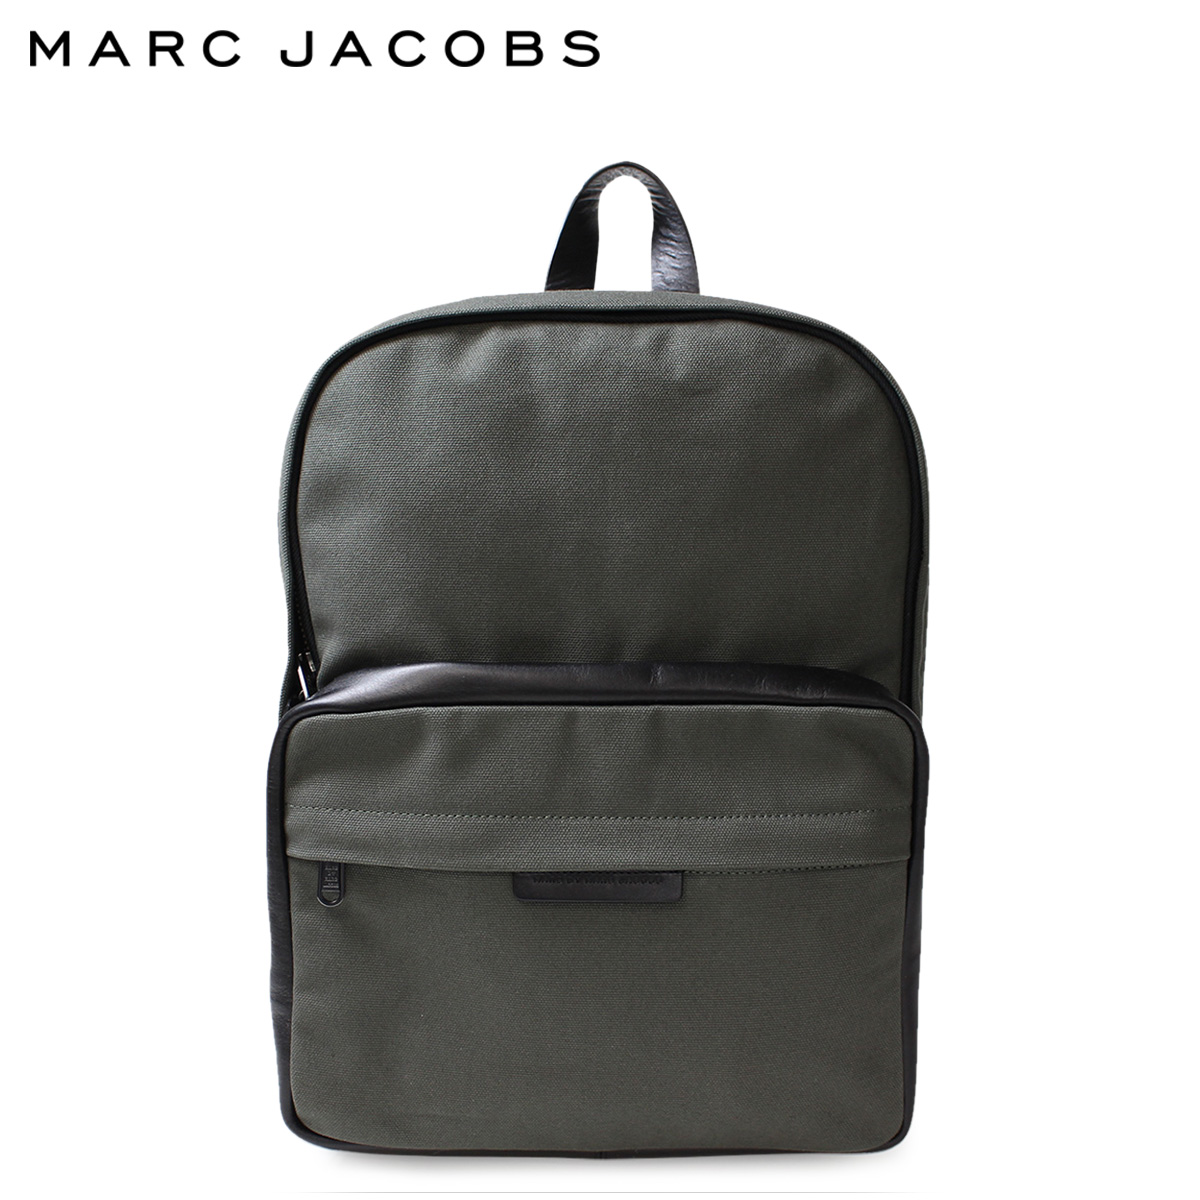 new selection new season Super discount MARC BY MARC JACOBS mark by mark Jacobs bag rucksack backpack M0006961  CANVAS BACKPACK Lady's